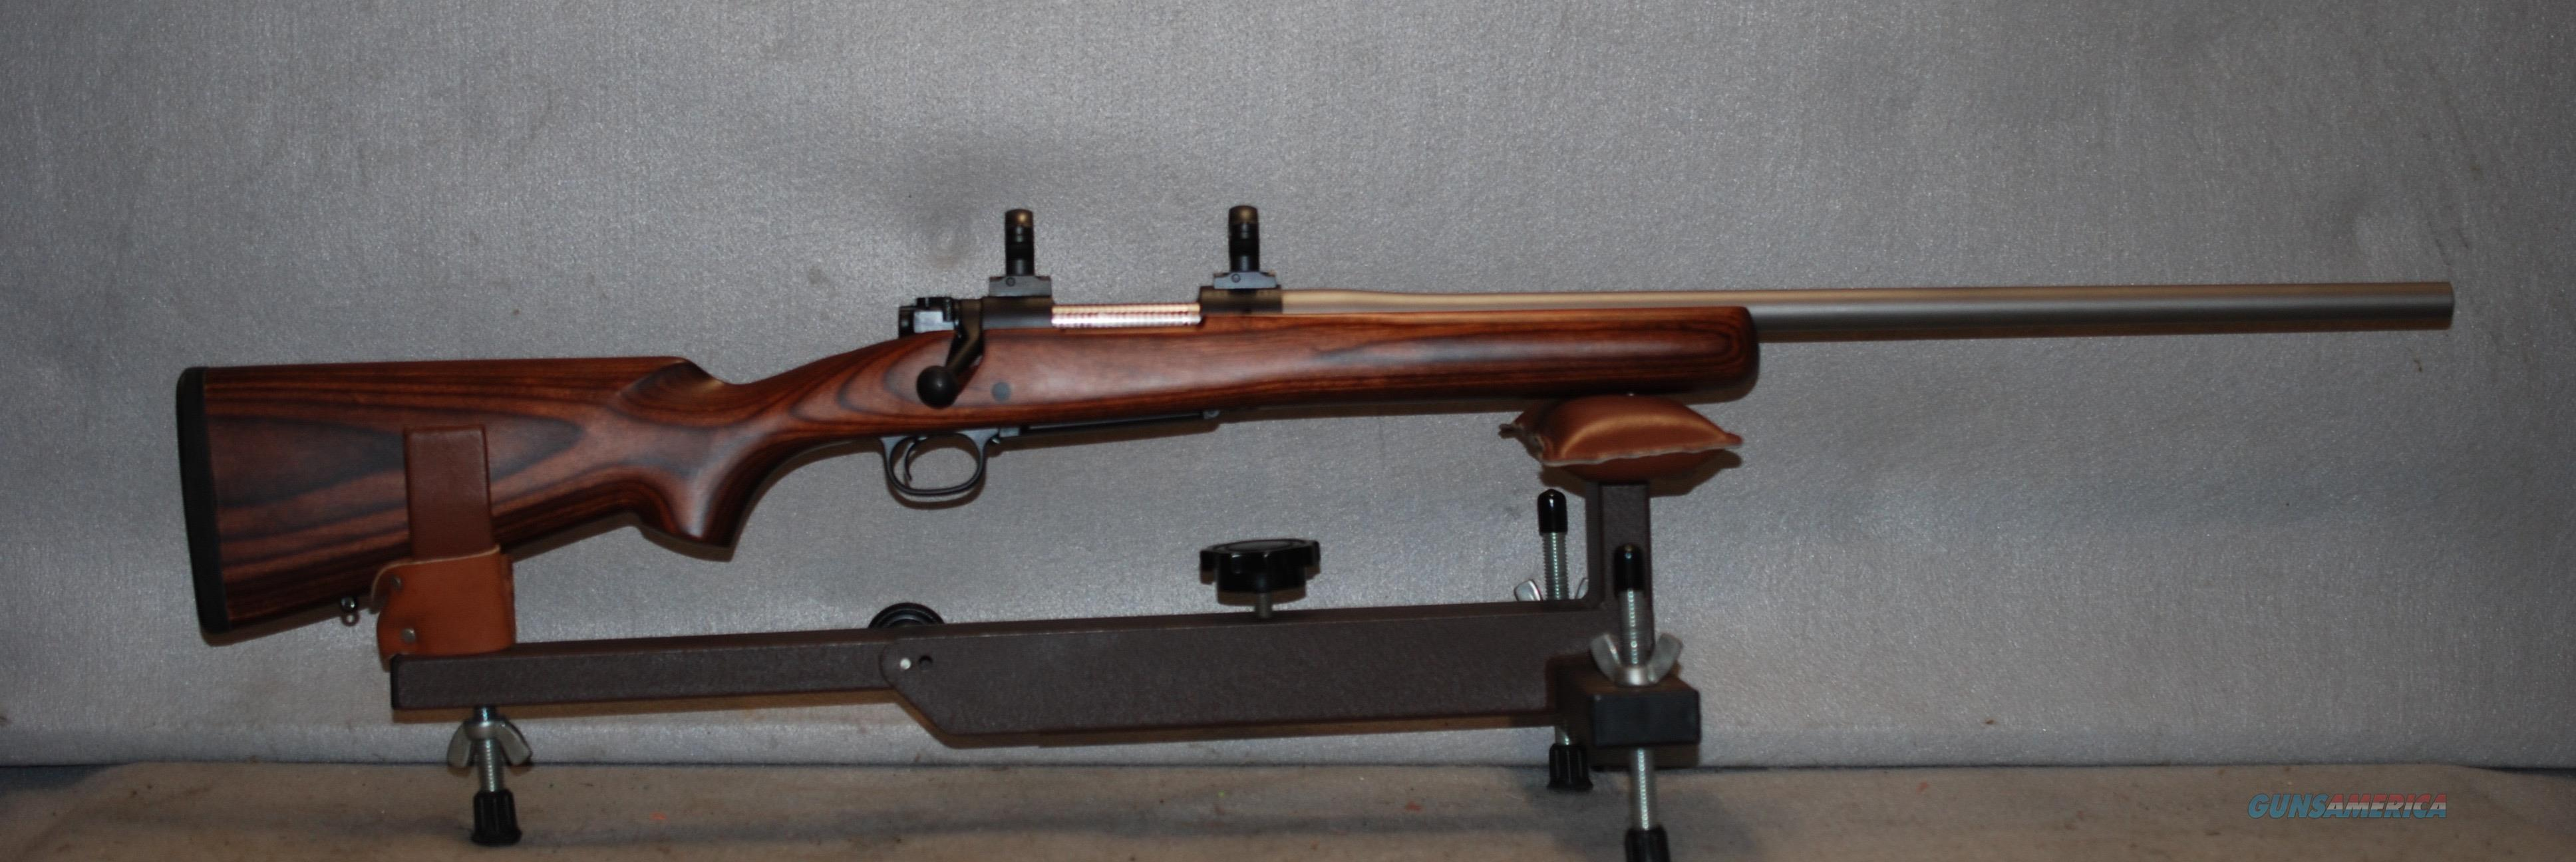 Winchester model 70, WSM 7mm, Unfired  Guns > Rifles > Winchester Rifles - Modern Bolt/Auto/Single > Model 70 > Post-64